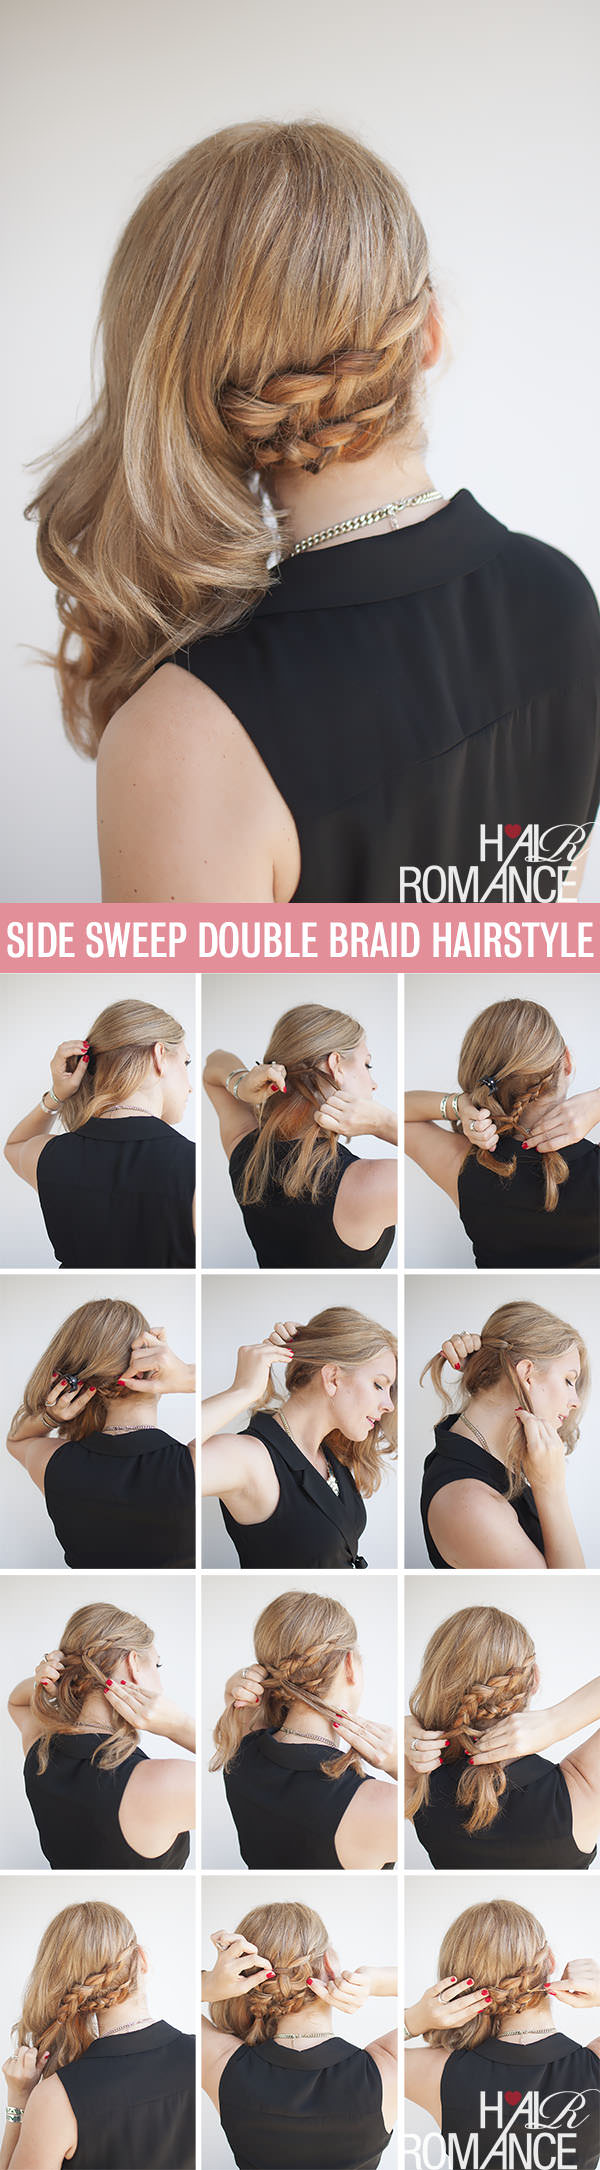 Side Sweep Double Braid